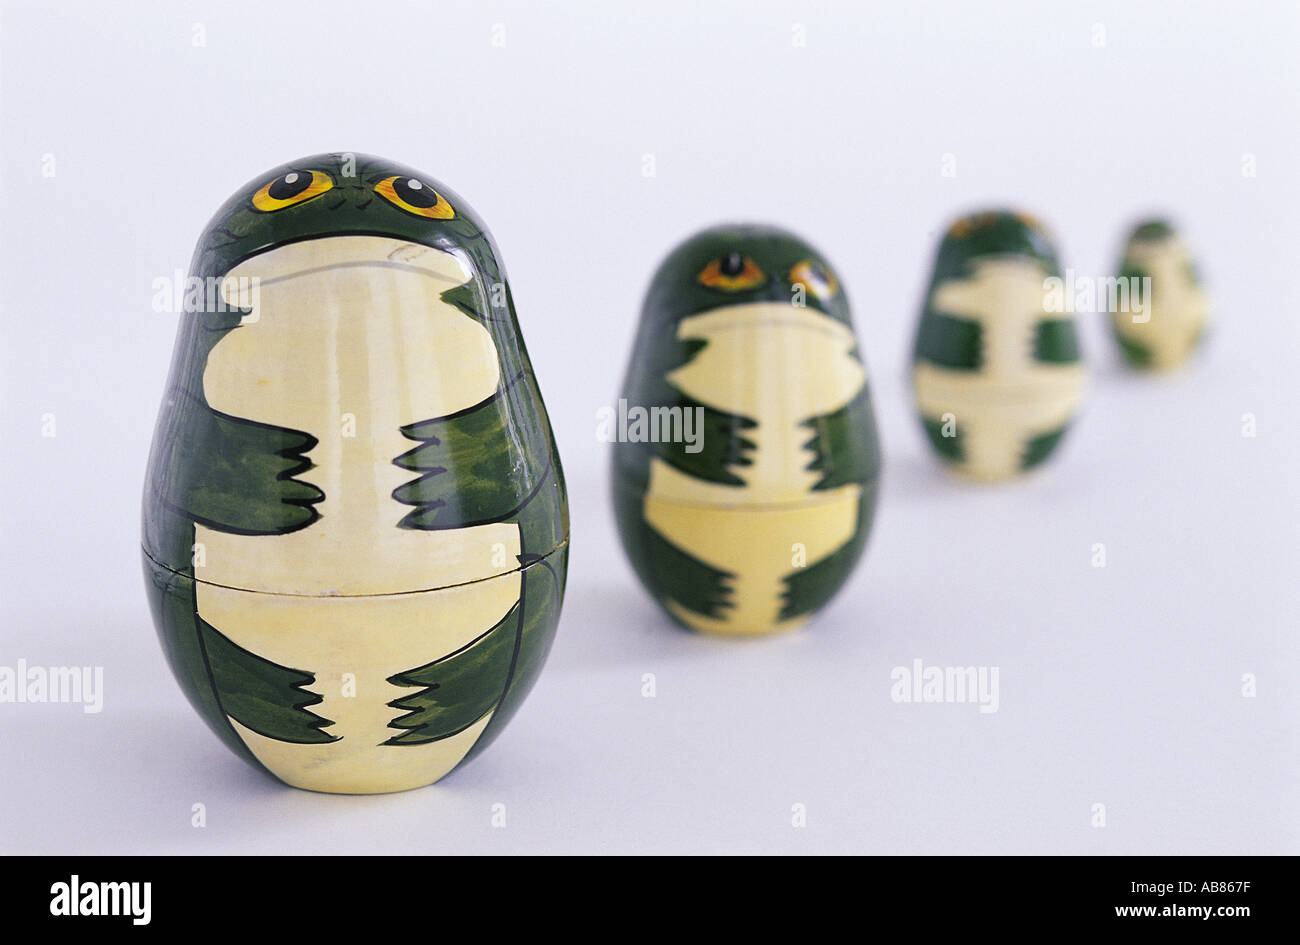 russian dolls toy stockfotos russian dolls toy bilder alamy. Black Bedroom Furniture Sets. Home Design Ideas